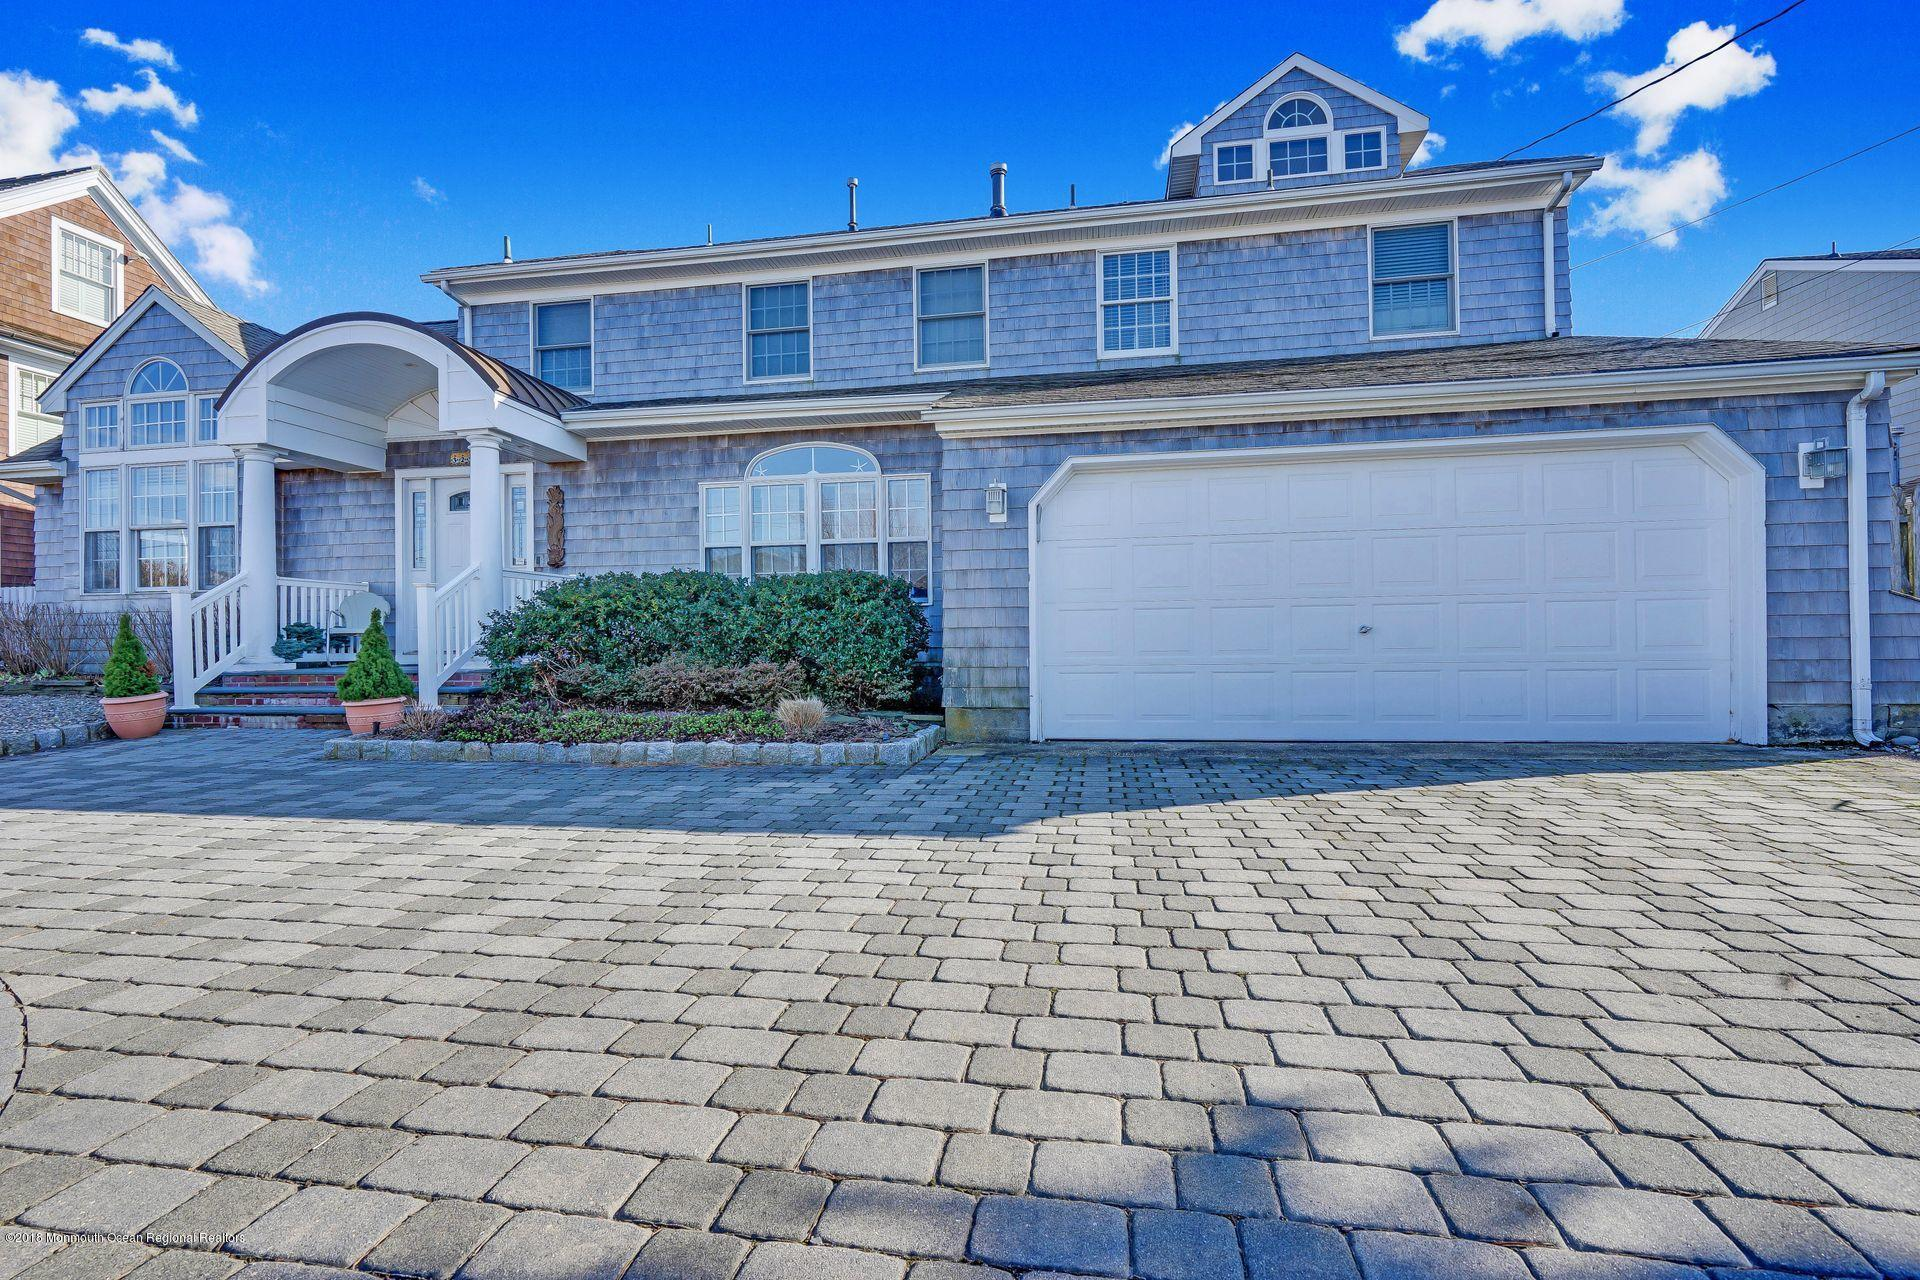 Photo of 323 Cove Drive, Mantoloking, NJ 08738